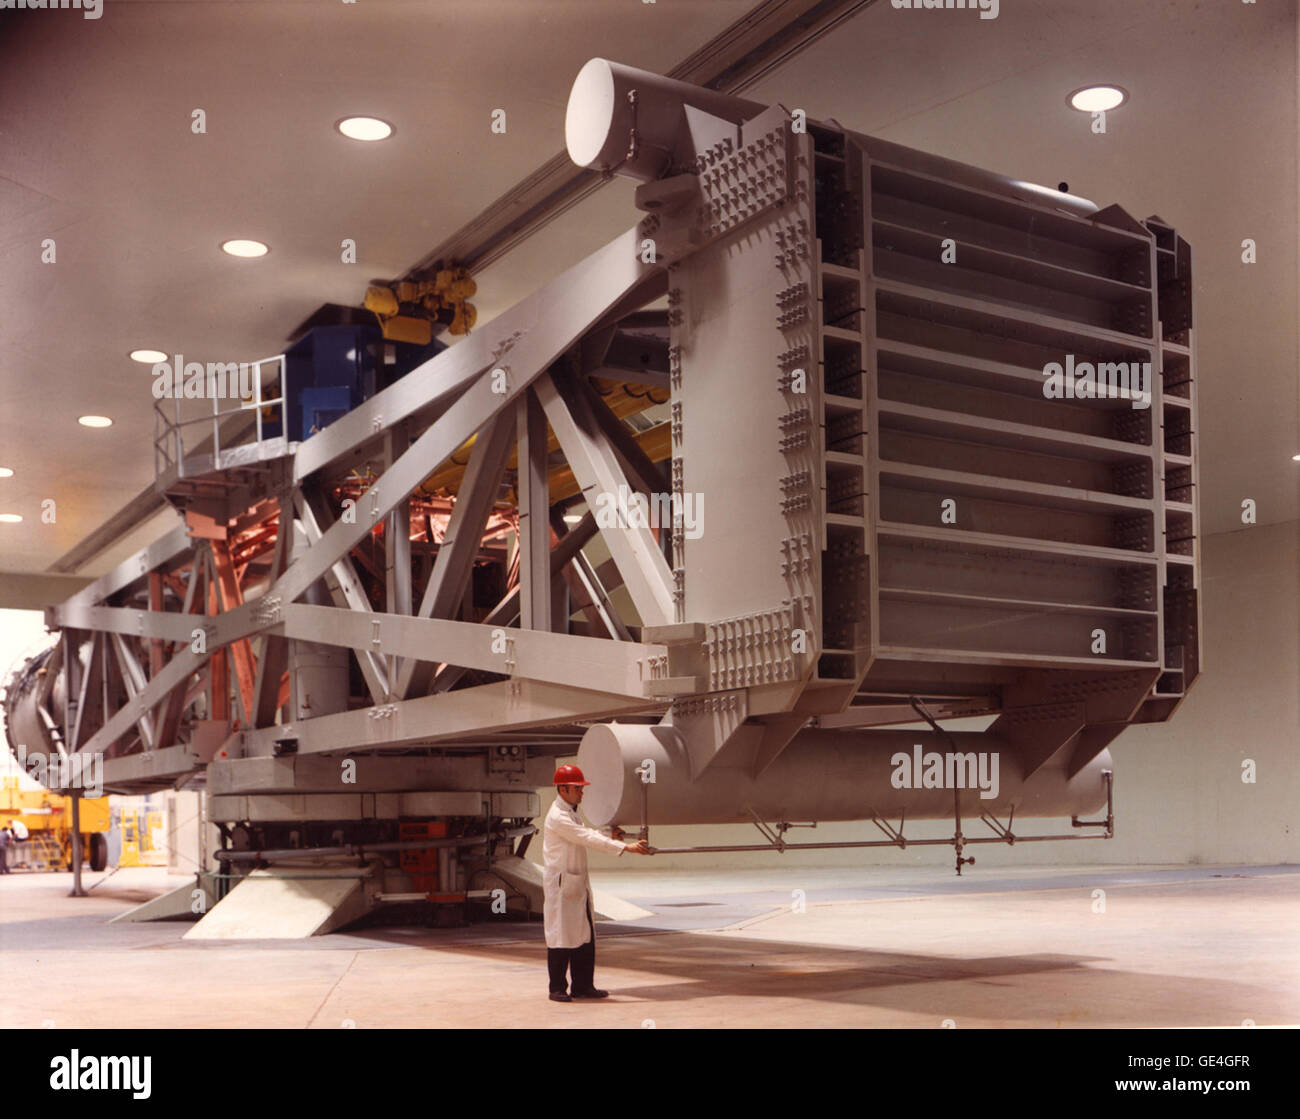 (2002) Goddard's Launch Phase Simulator or High-Capacity Centrifuge simulates vibration, G-forces and changing - Stock Image